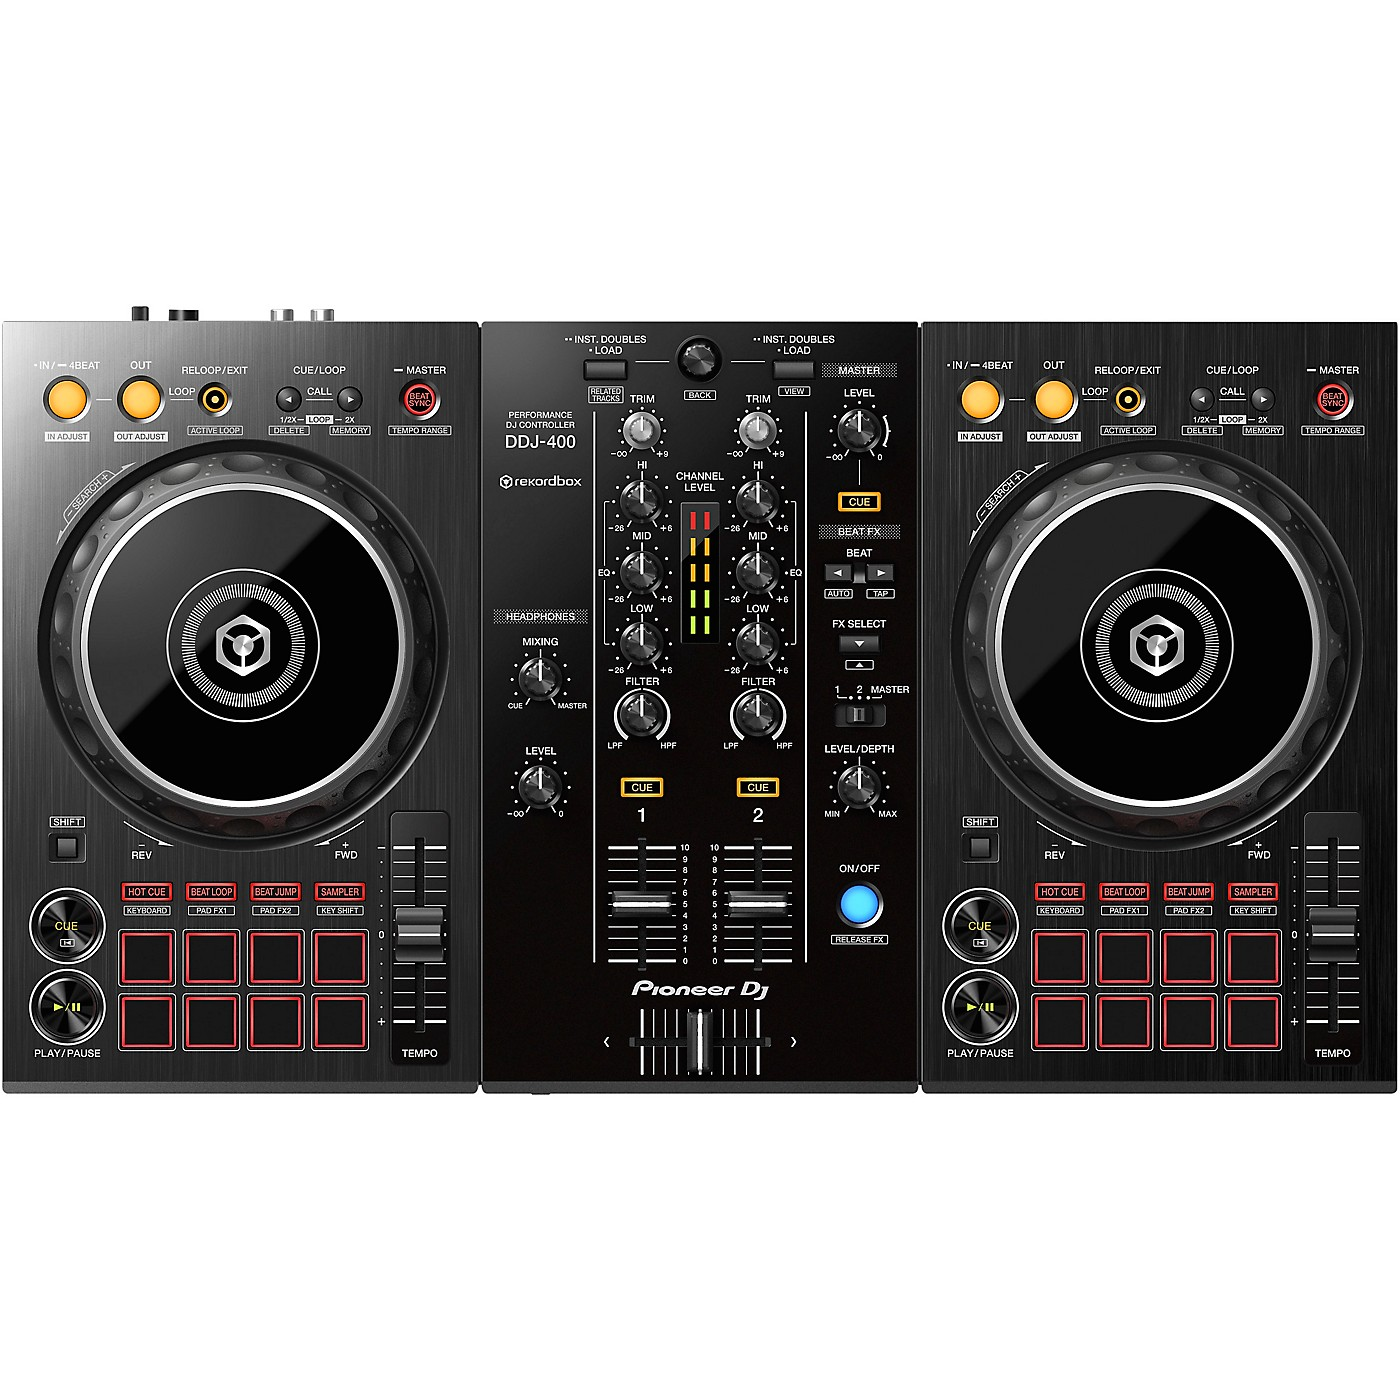 Pioneer DDJ-400 2-Channel DJ Controller for rekordbox dj thumbnail